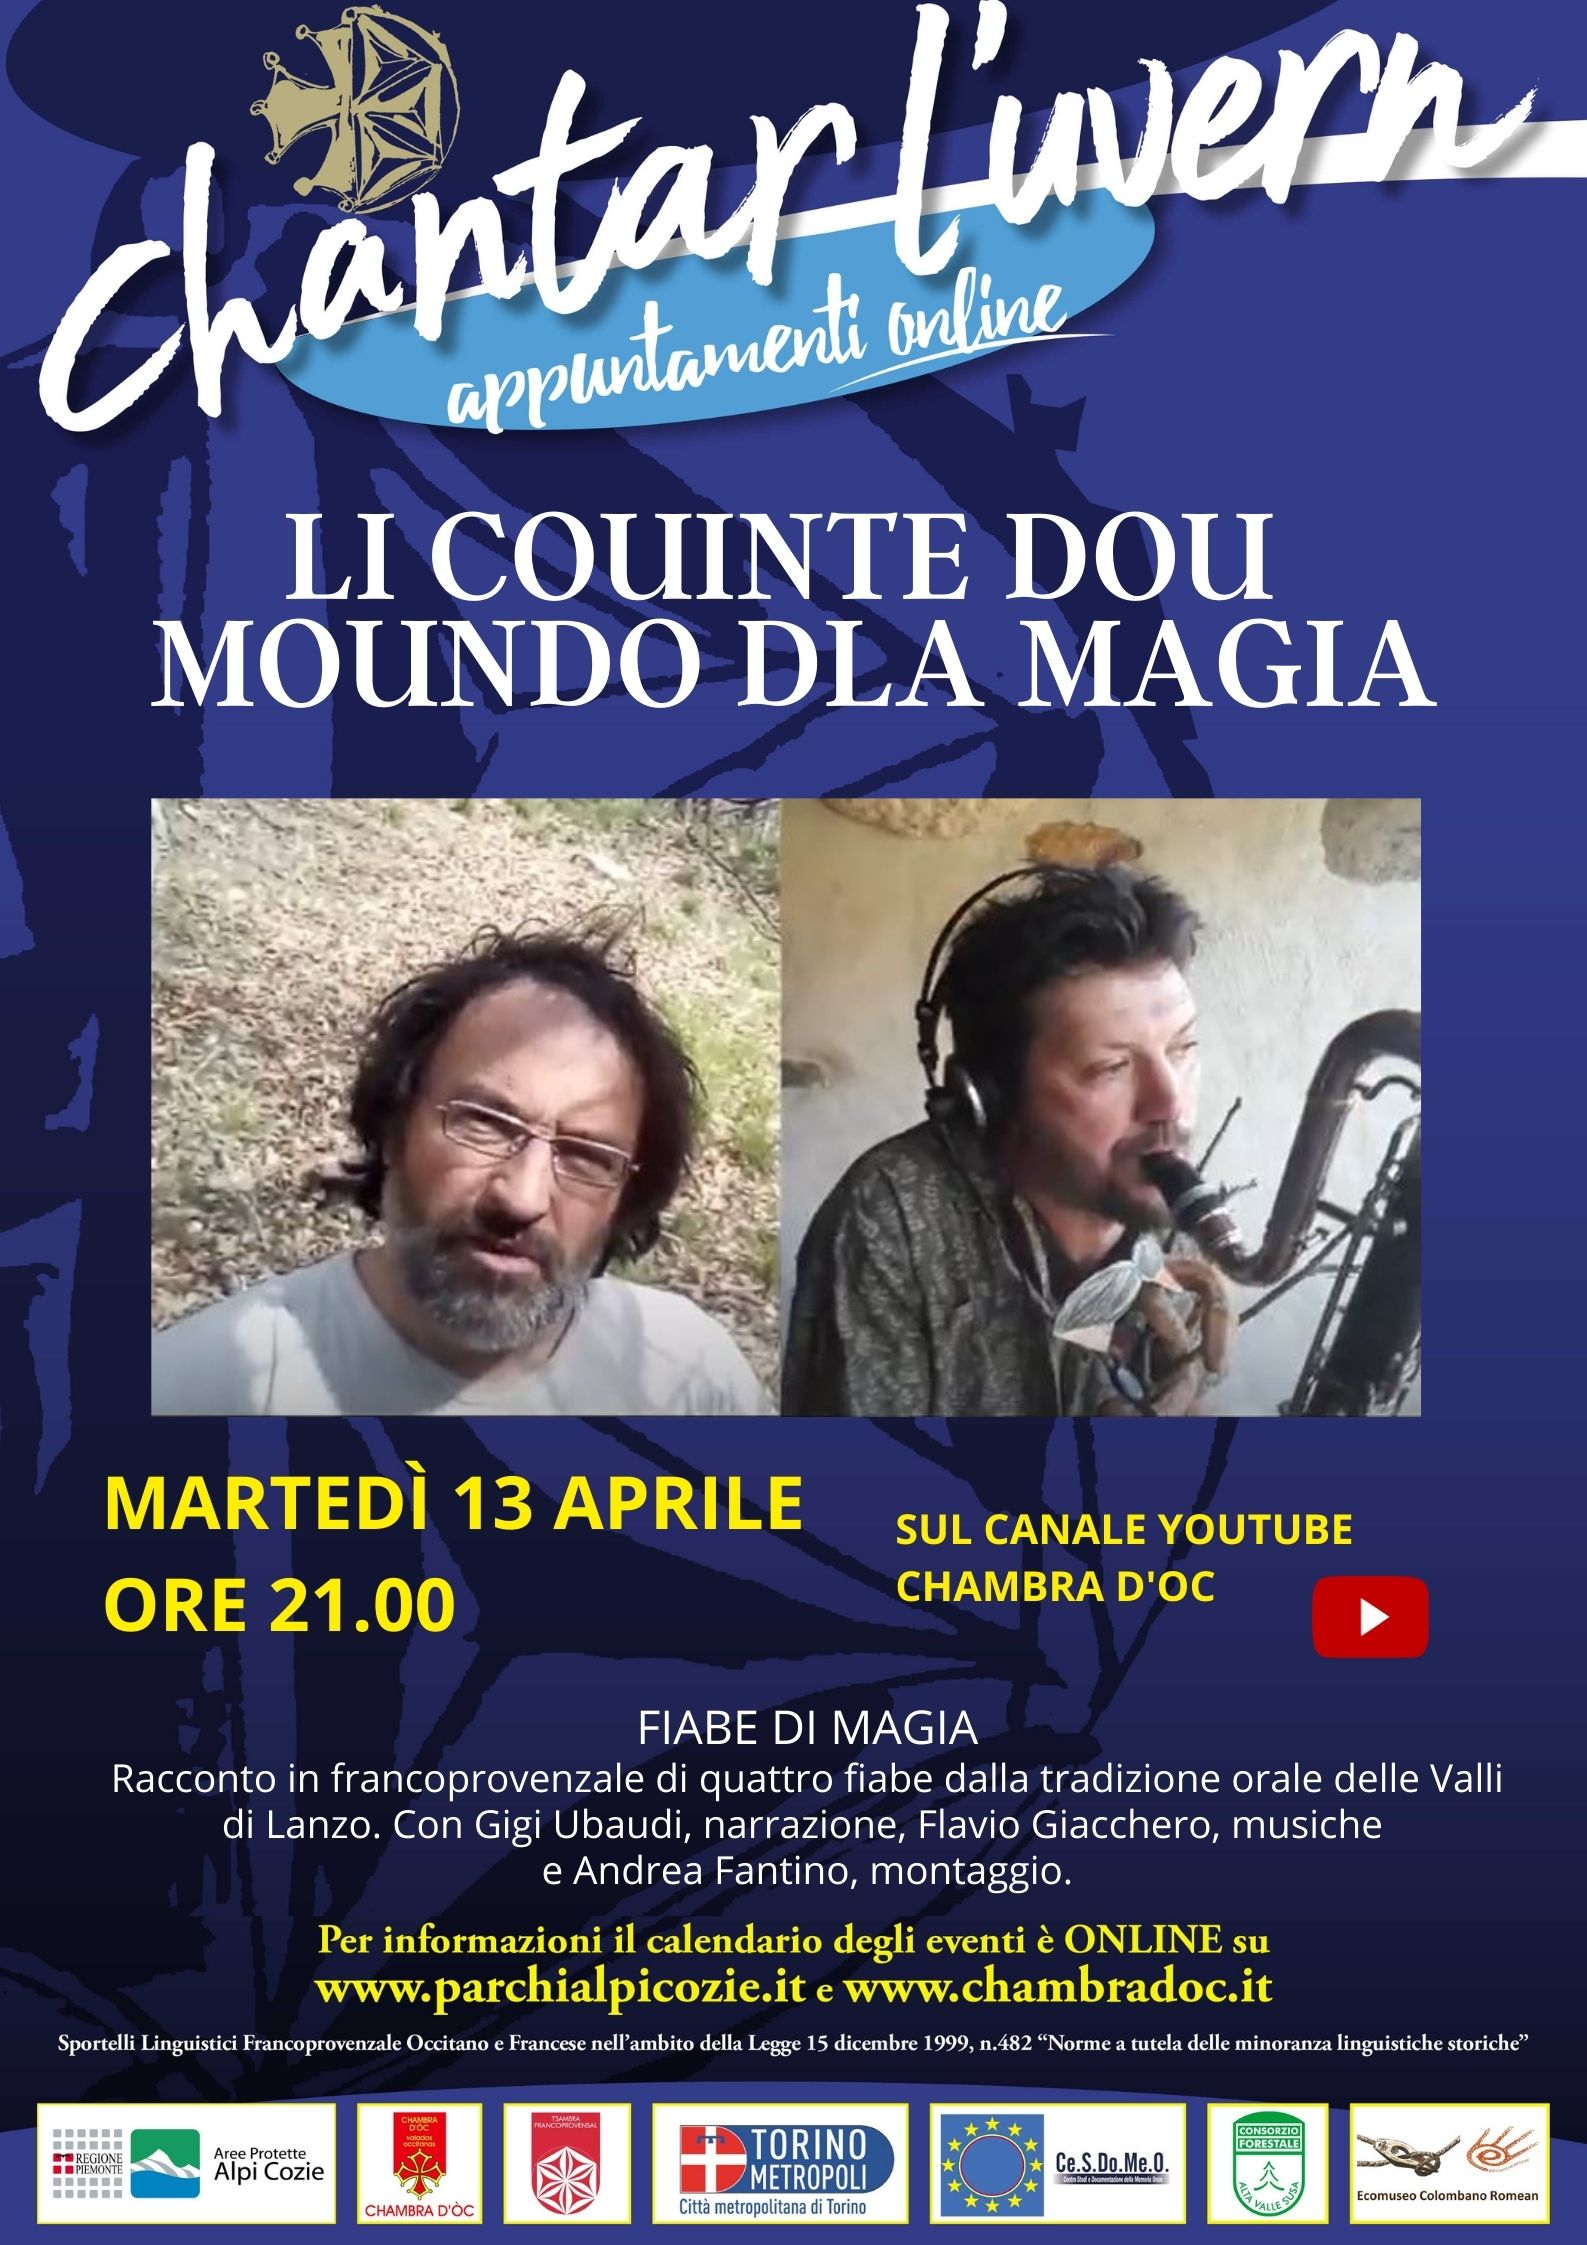 Copia di Chantar l'uvern-singolo evento (14).jpg